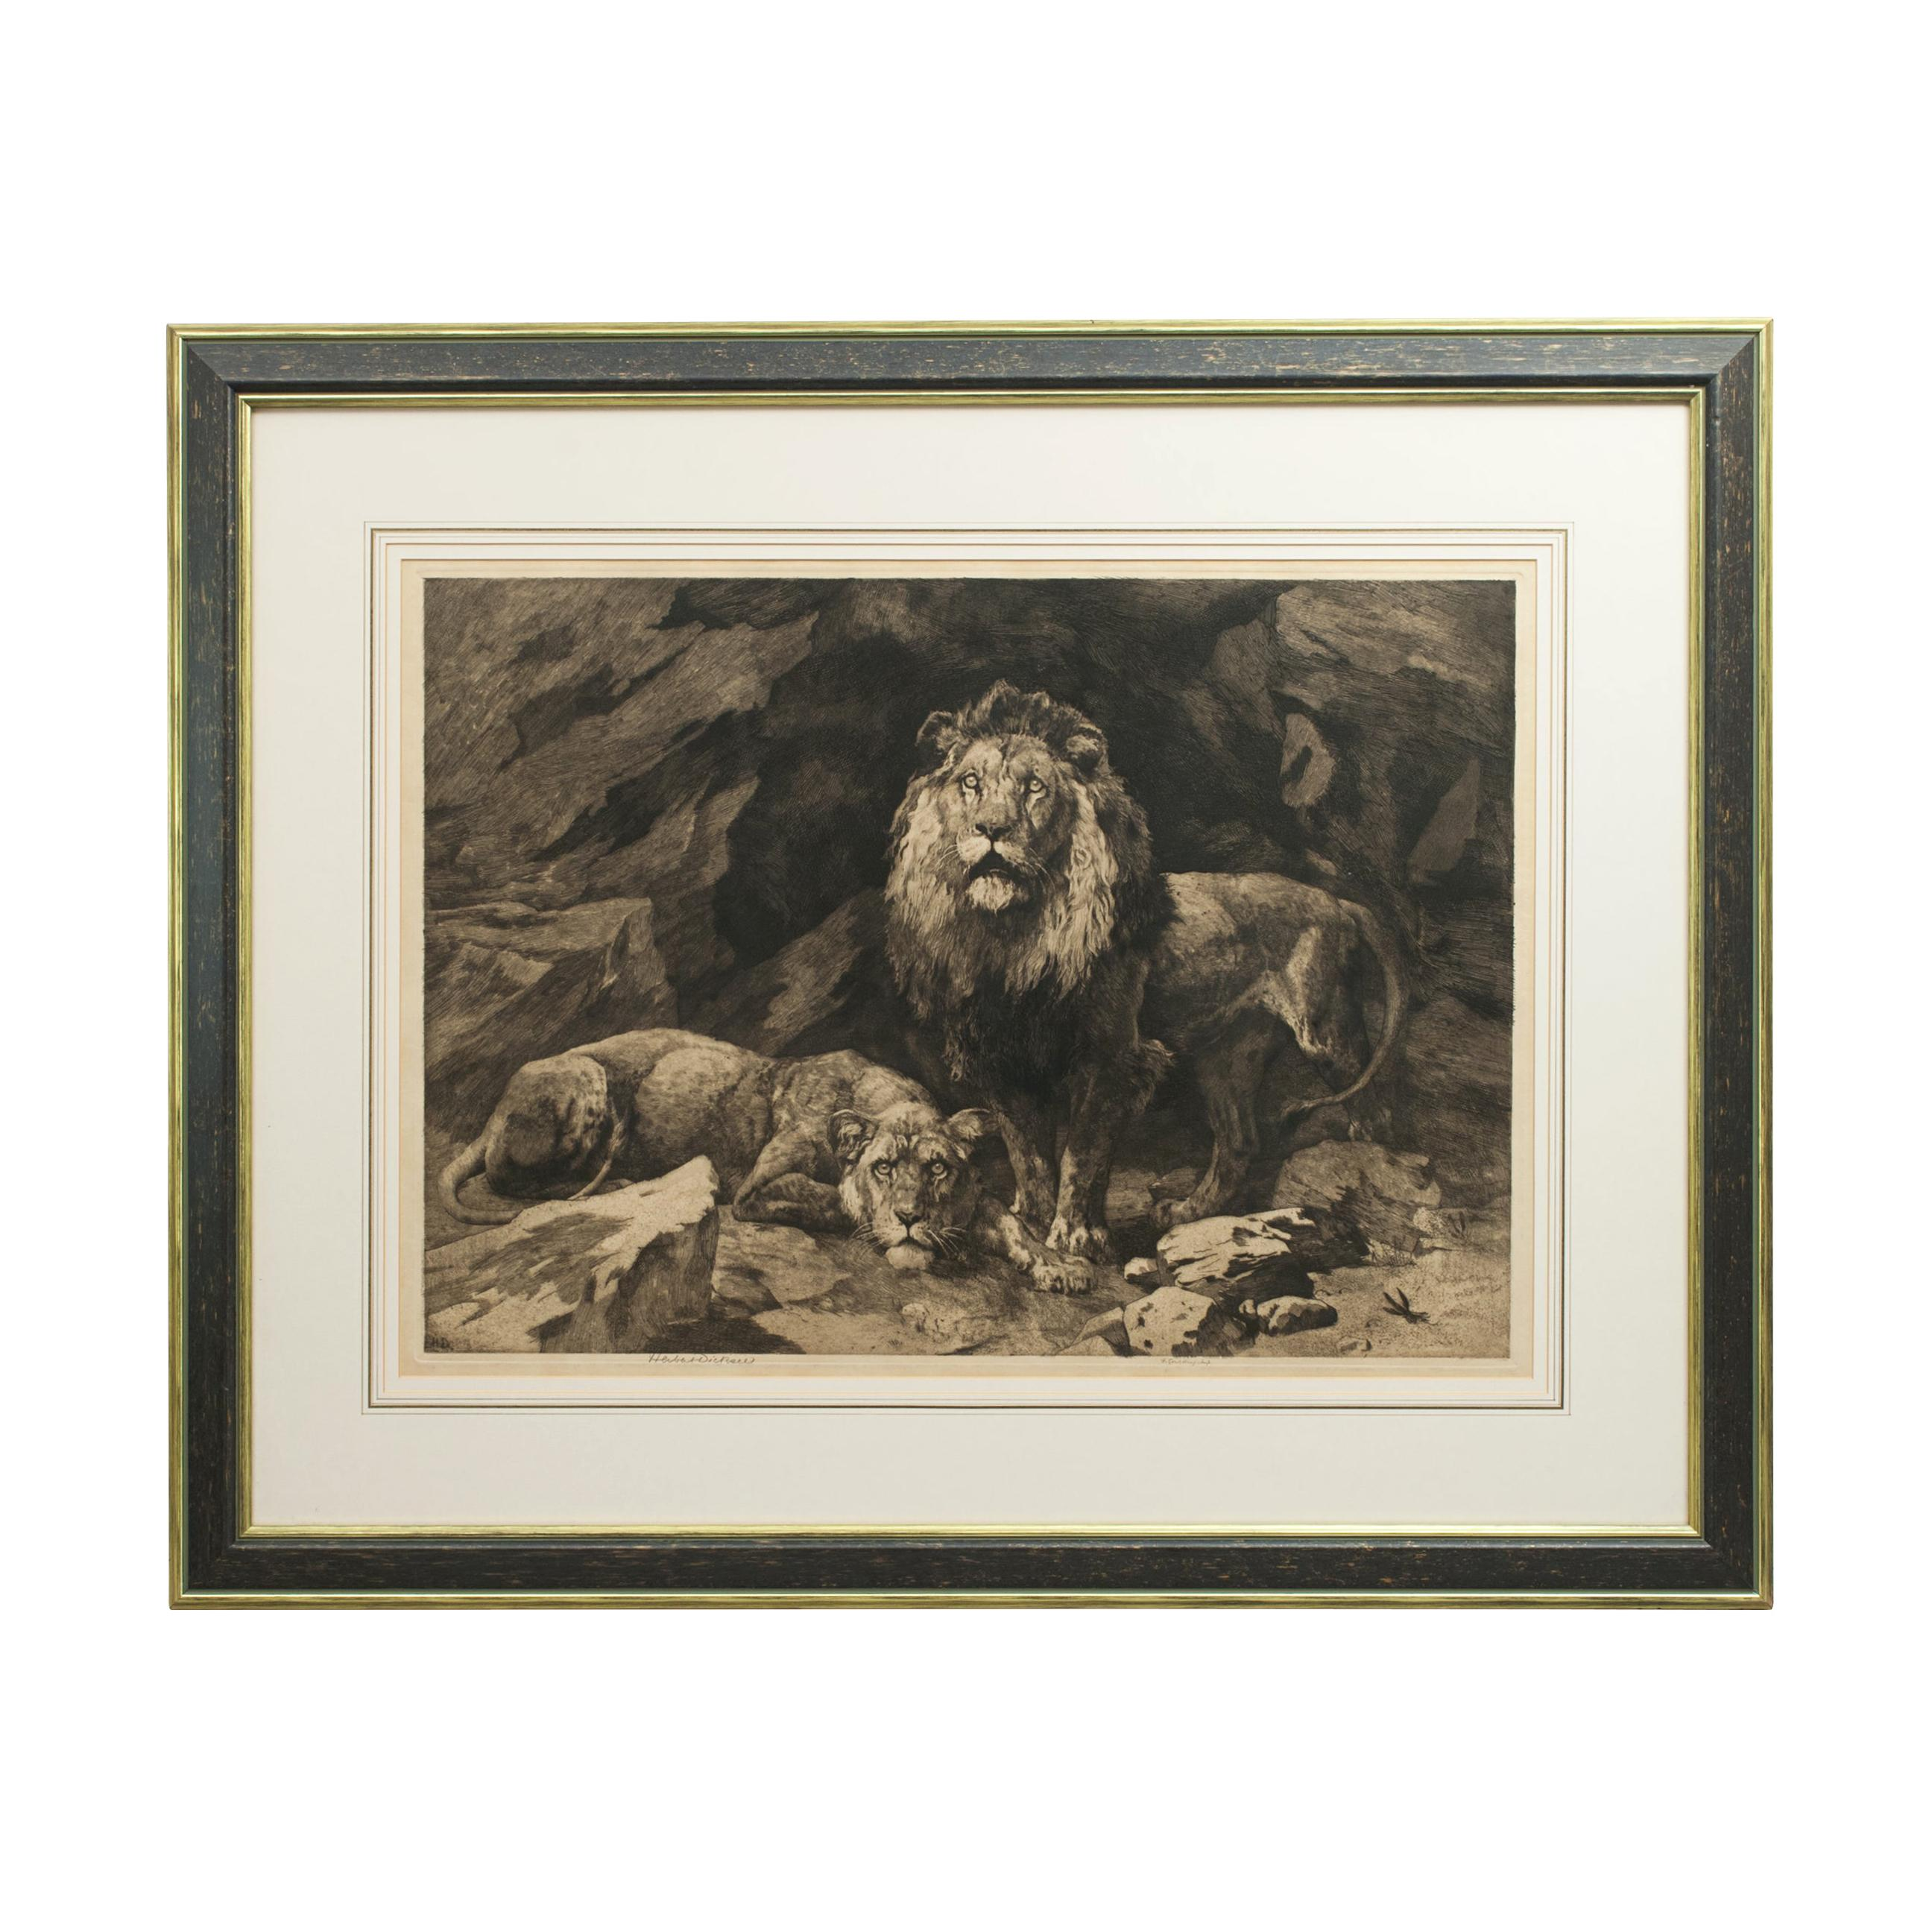 Dicksee Herbert, Etching of Lion and Lioness, Roused, Signed in Pencil